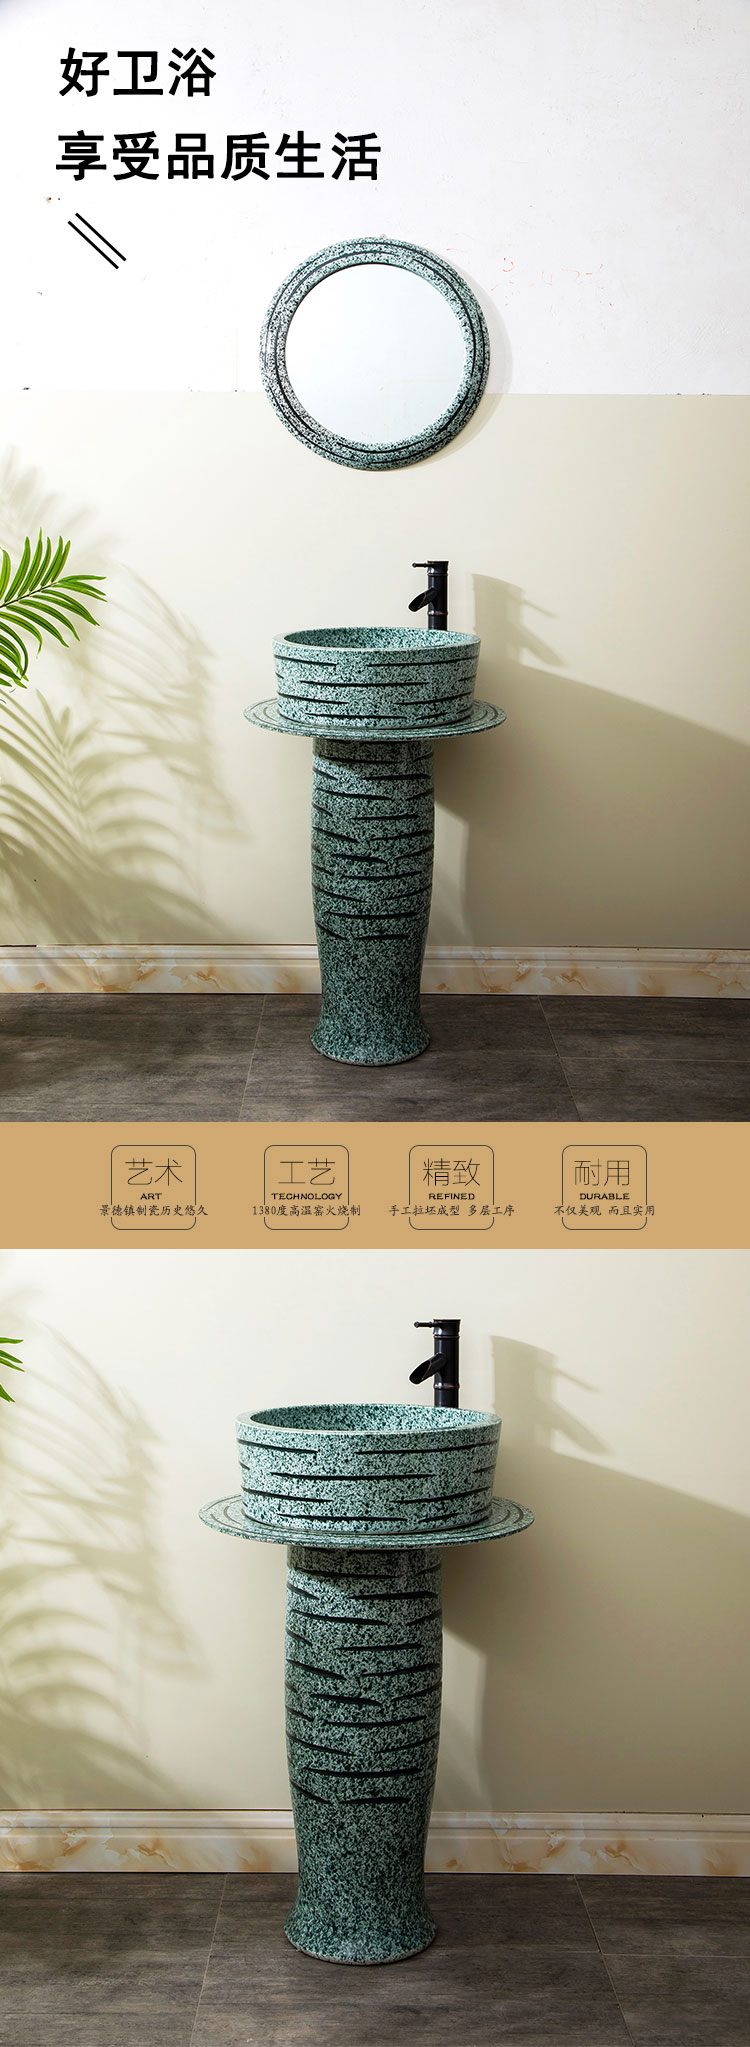 Ceramic column basin floor one European art of the basin that wash a face to wash your hands basin bathroom home jingdezhen the pool that wash a face